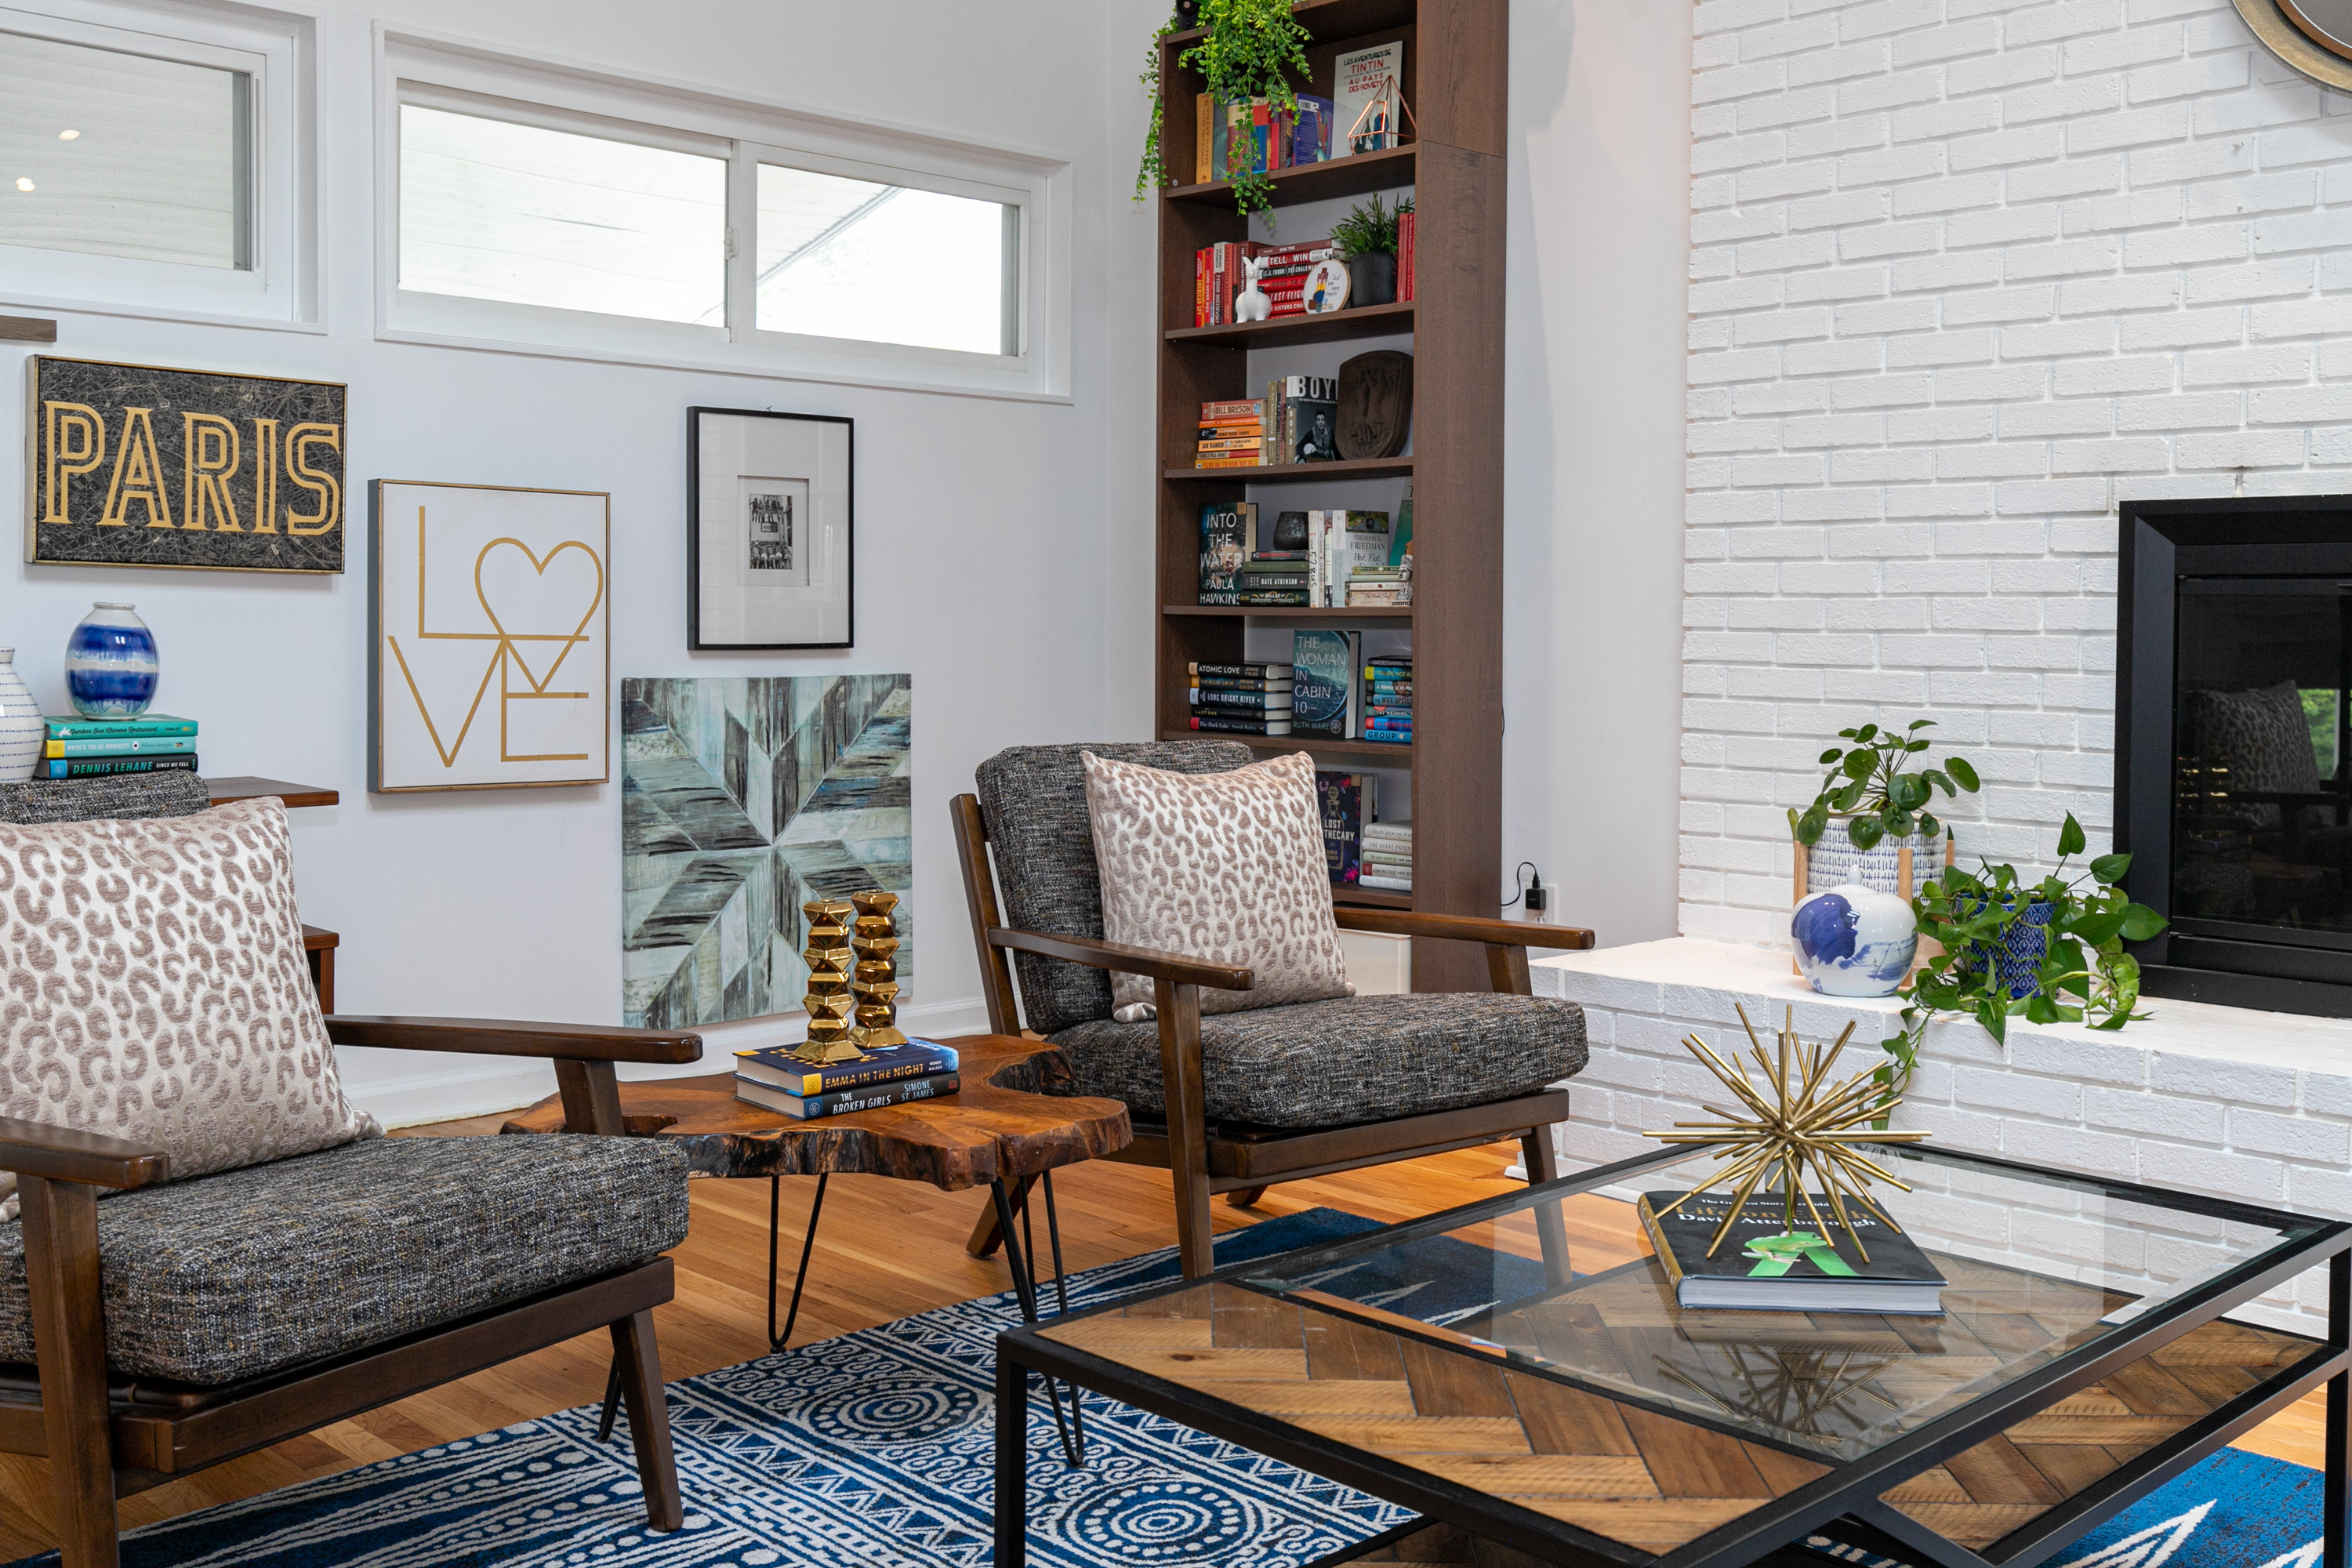 Beautiful home styling by DKG